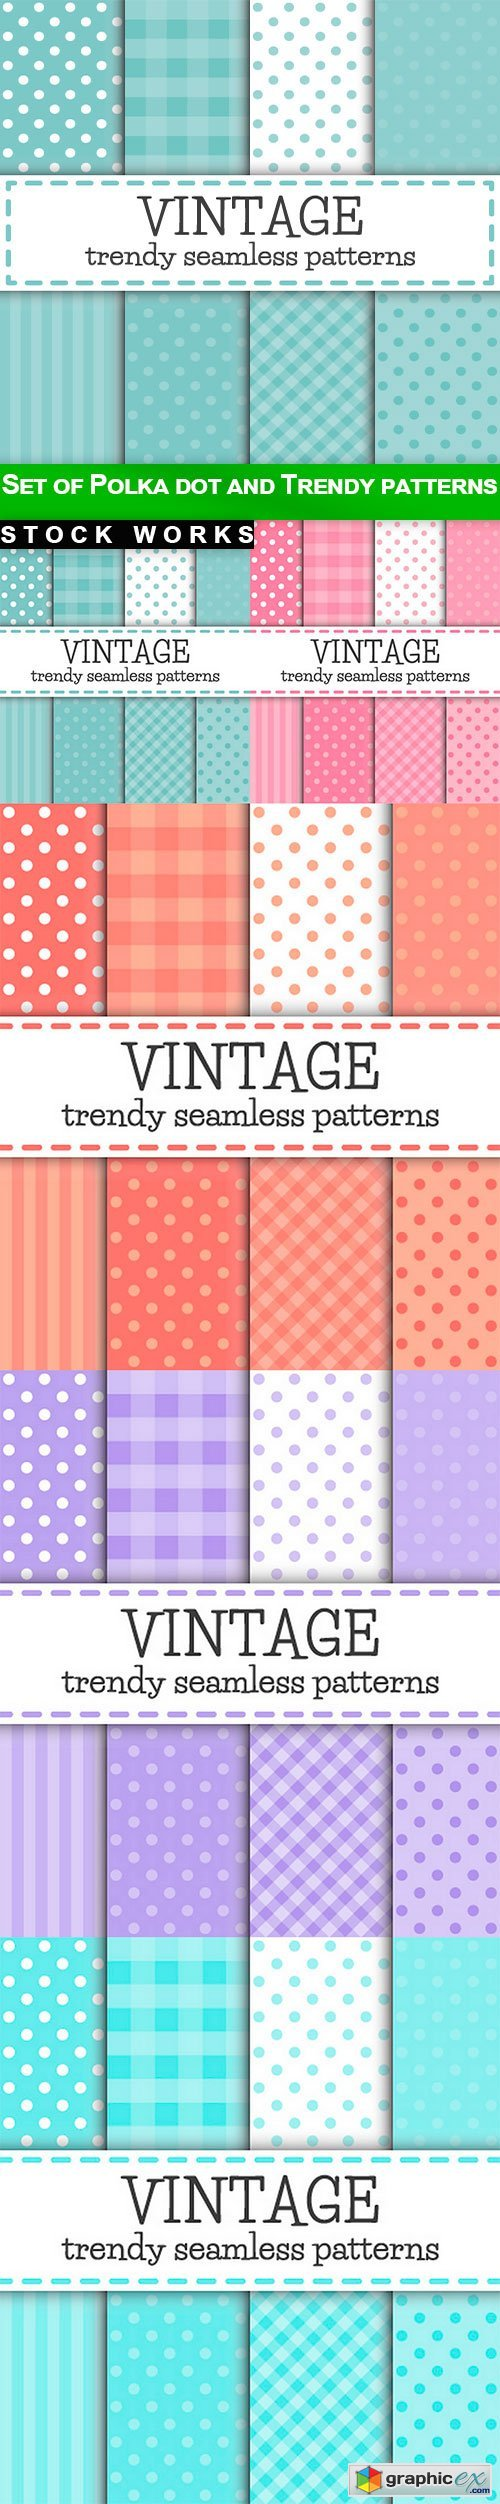 Set of Polka dot and Trendy patterns - 5 EPS